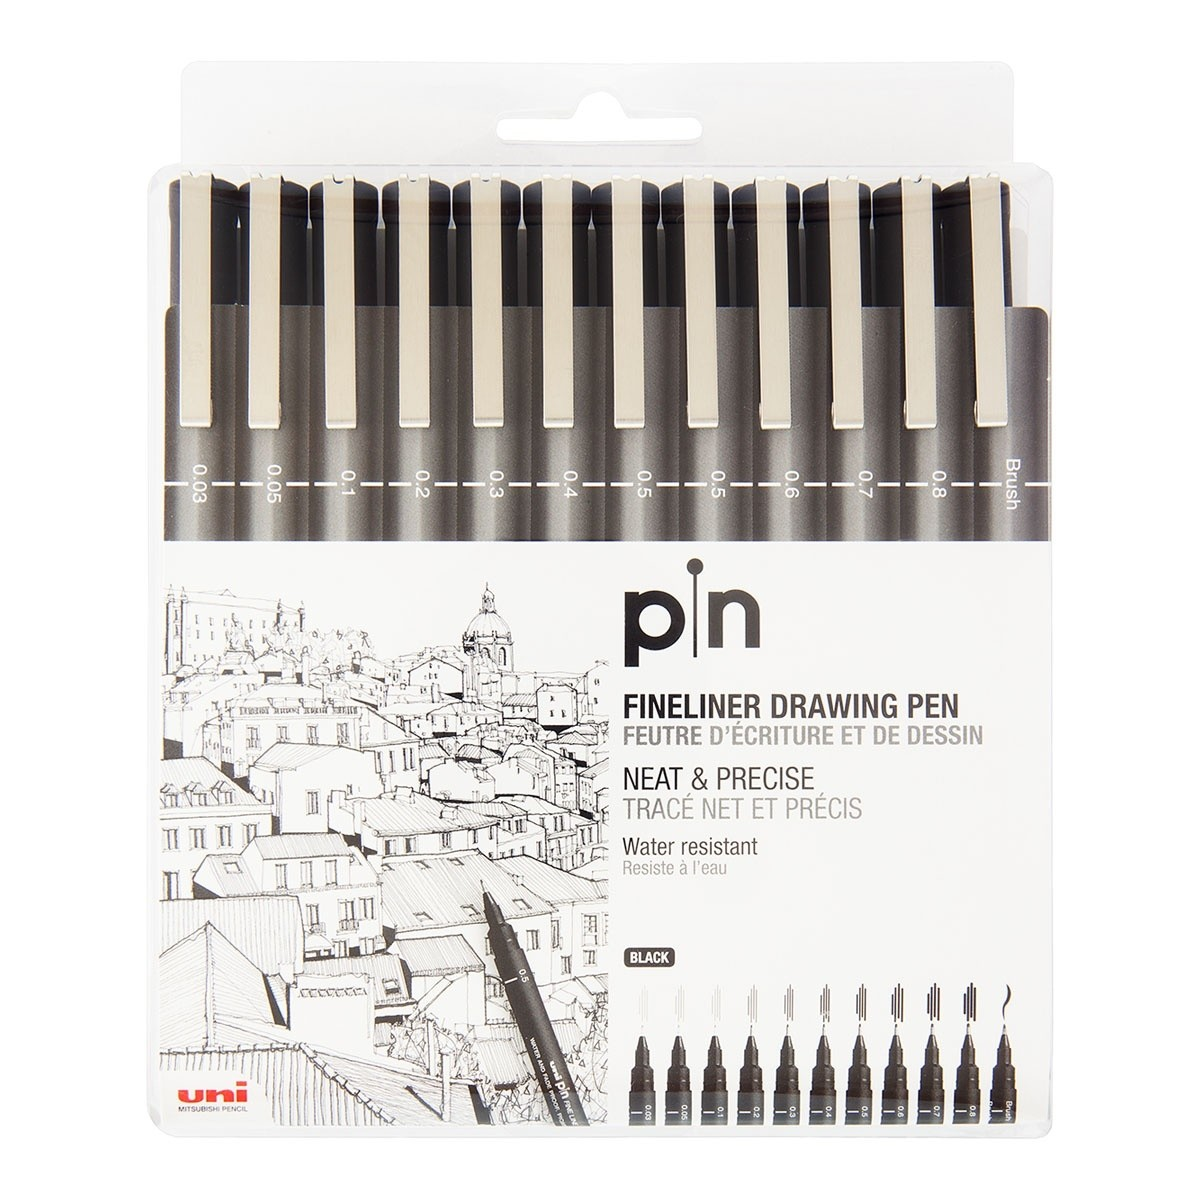 Uni Pin fineliner pen, 12 stk, sort